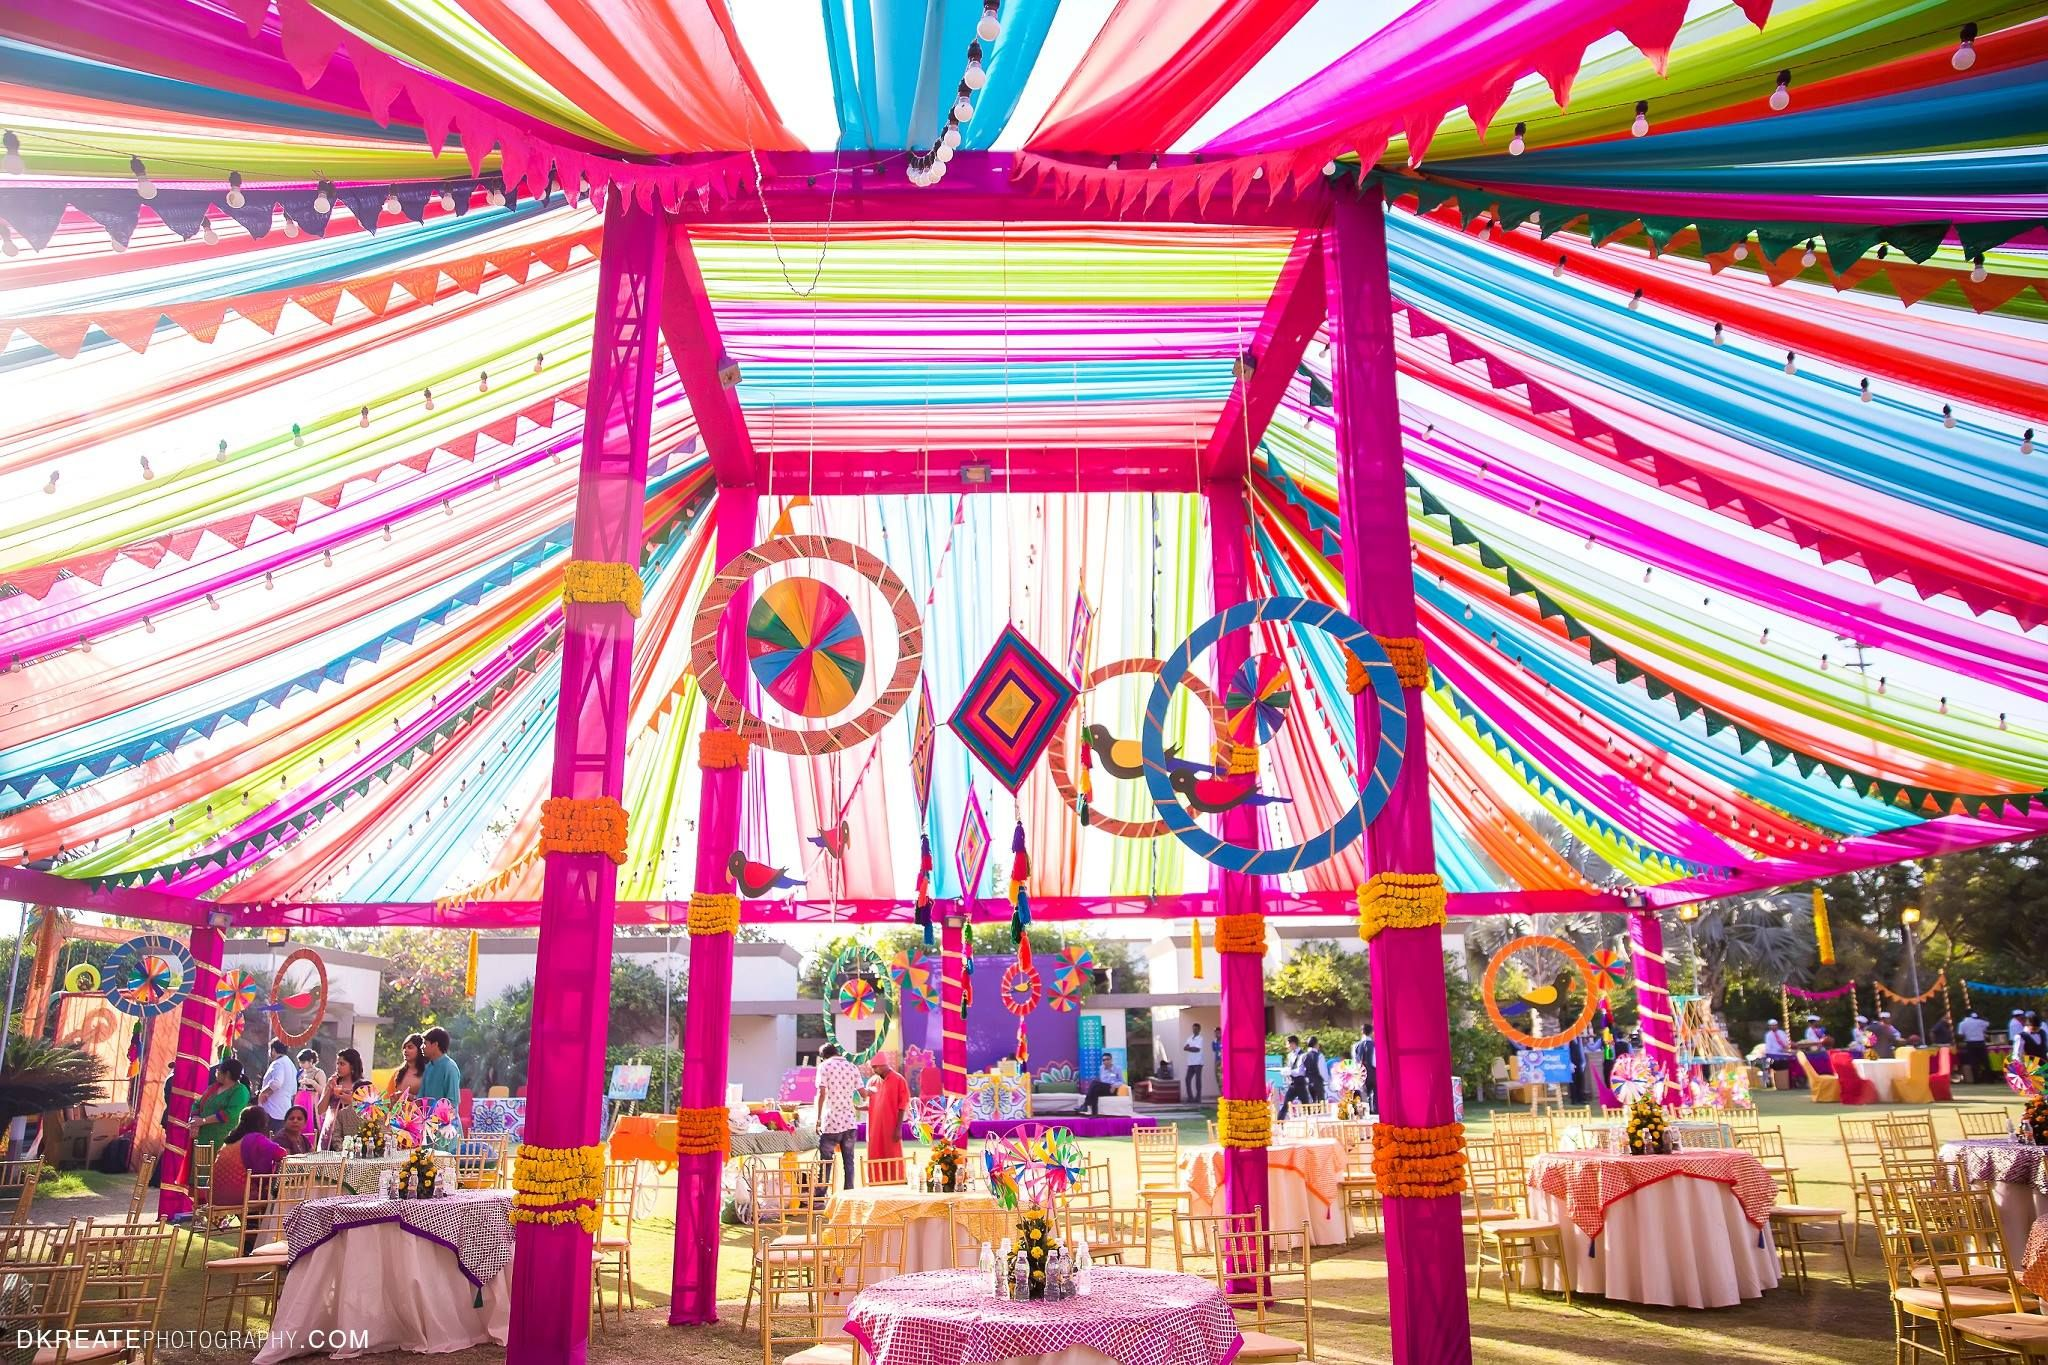 Best Mela Themed Decor For The Mehndi Party Fat Indian Wedding Colorful Vibrant Fun Mandap Hanging Parrots Diy